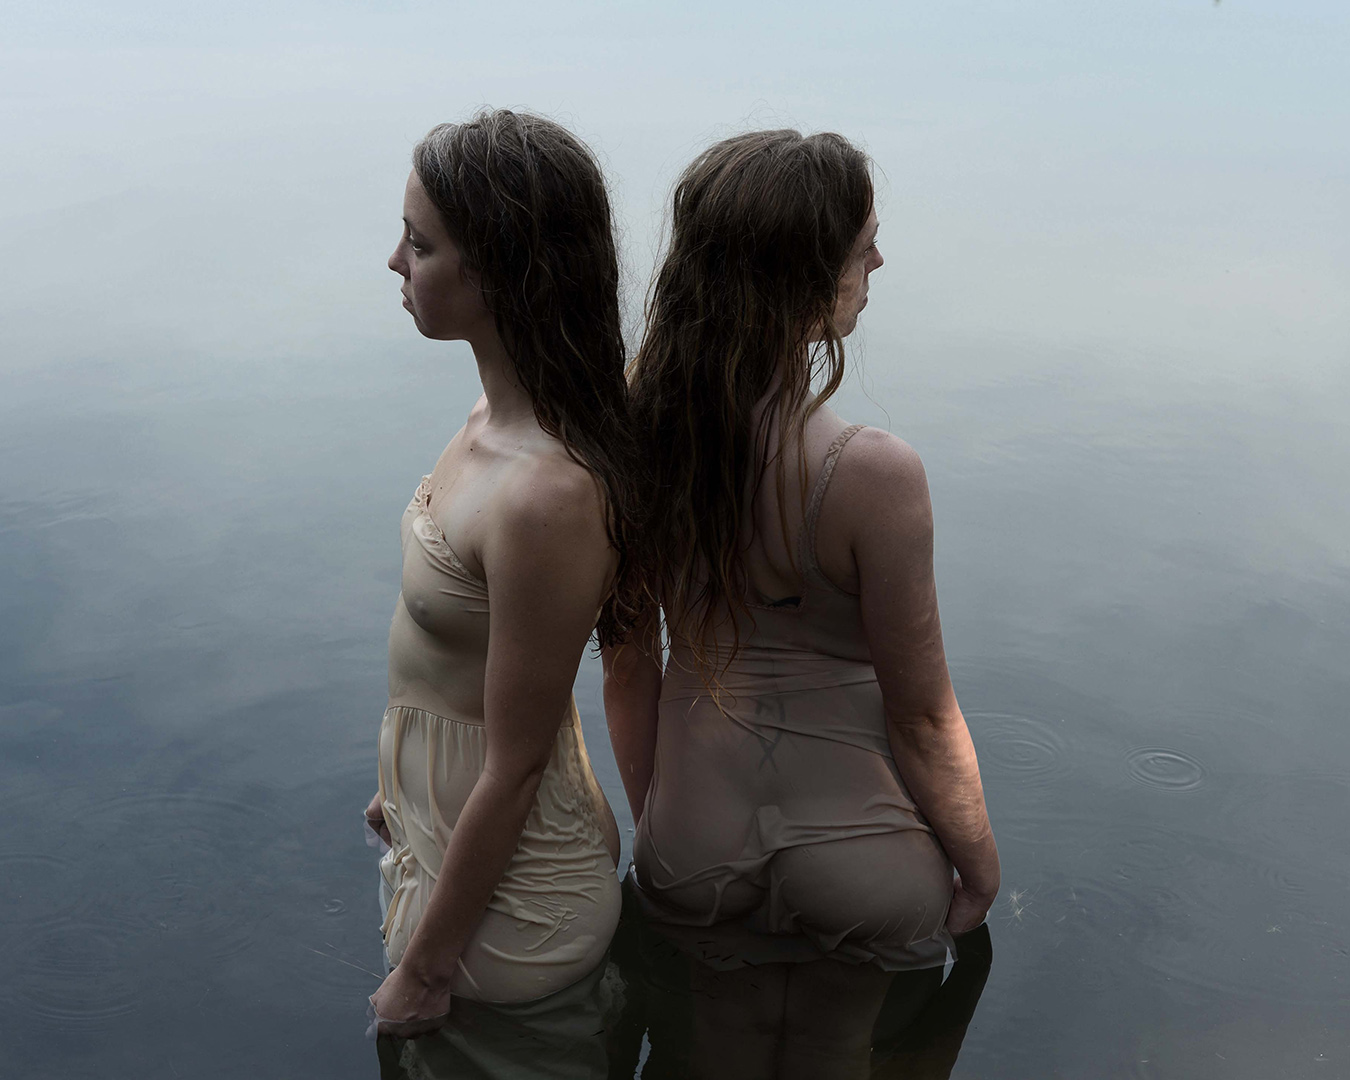 Laura and Kate. Archetype: The Water Nymphs